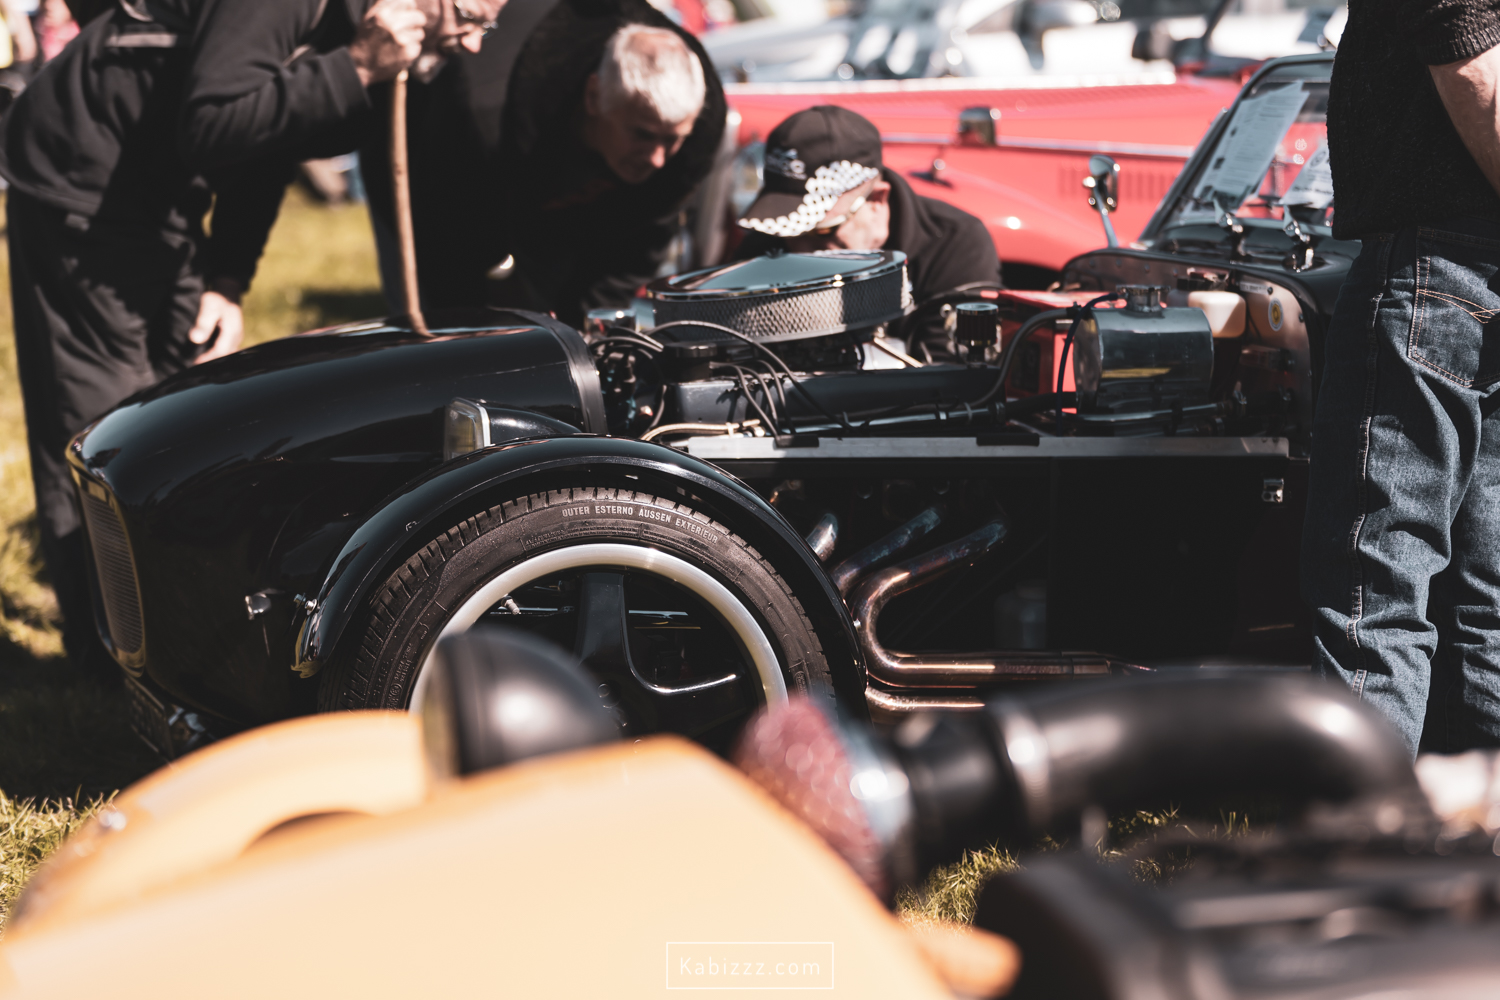 Kabizzz_Photography_Stirling_District_Classic _cars-11.jpg